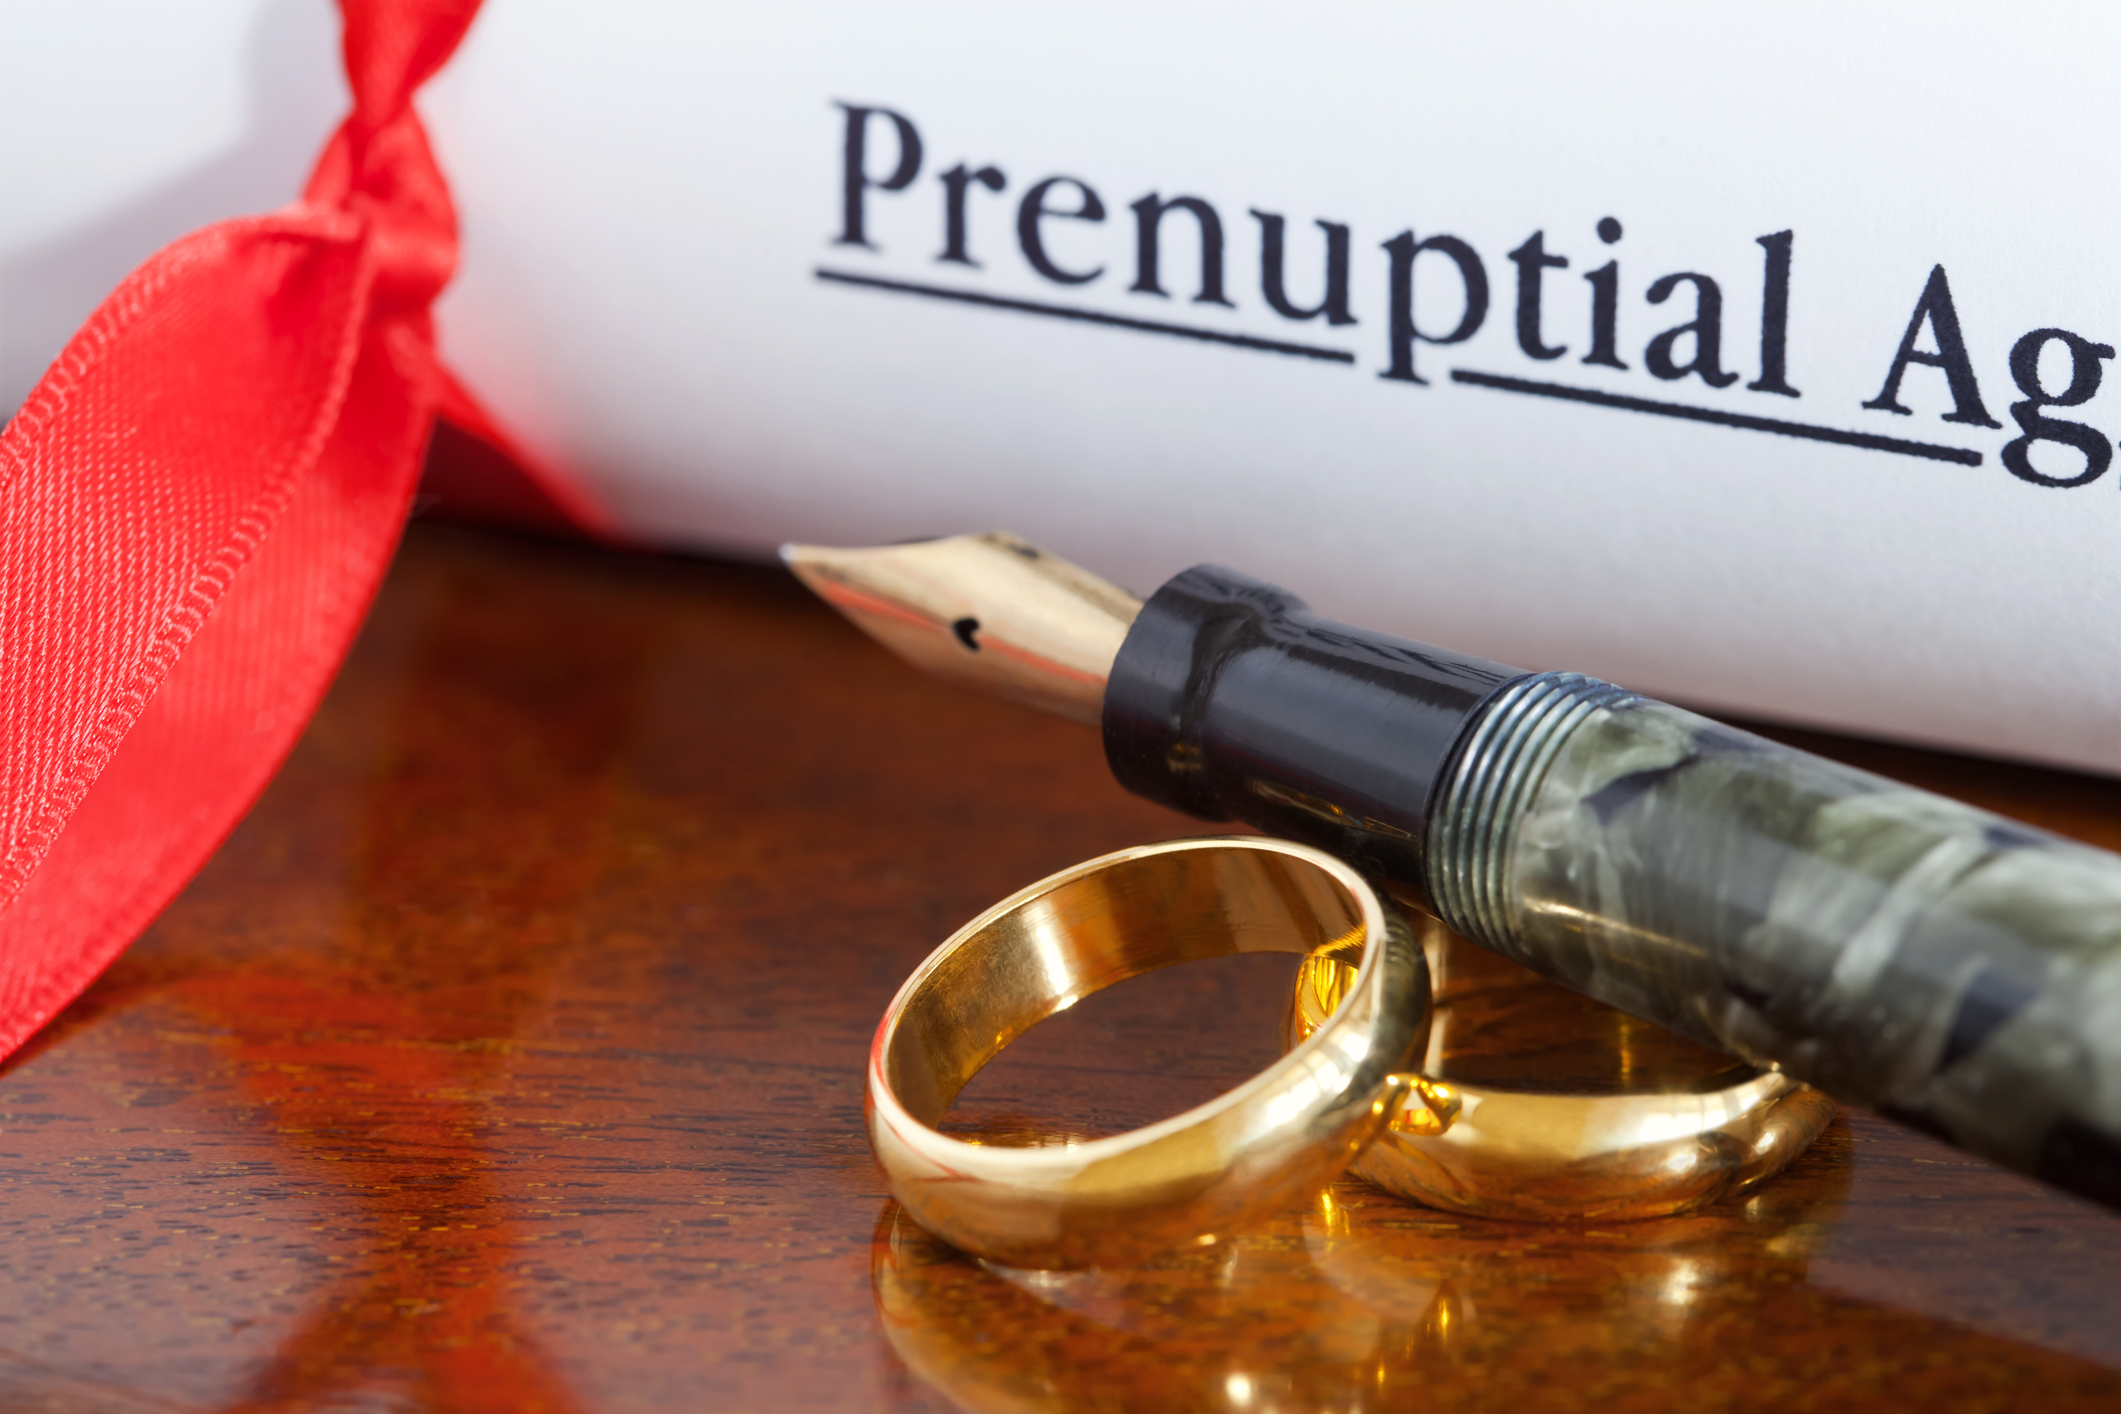 Prenuptial/Postnuptial Agreements - Before or after parties get married they can contractually agree regarding how to split their property in the event of a divorce.  If these agreements are not done properly, they may be deemed invalid at a later date.  We have experience preparing Prenuptial Agreements and Postnuptial Agreements in order to protect the assets and interests of our clients.  Contact us to discuss how we can help protect your interests while starting your marriage on a solid footing.